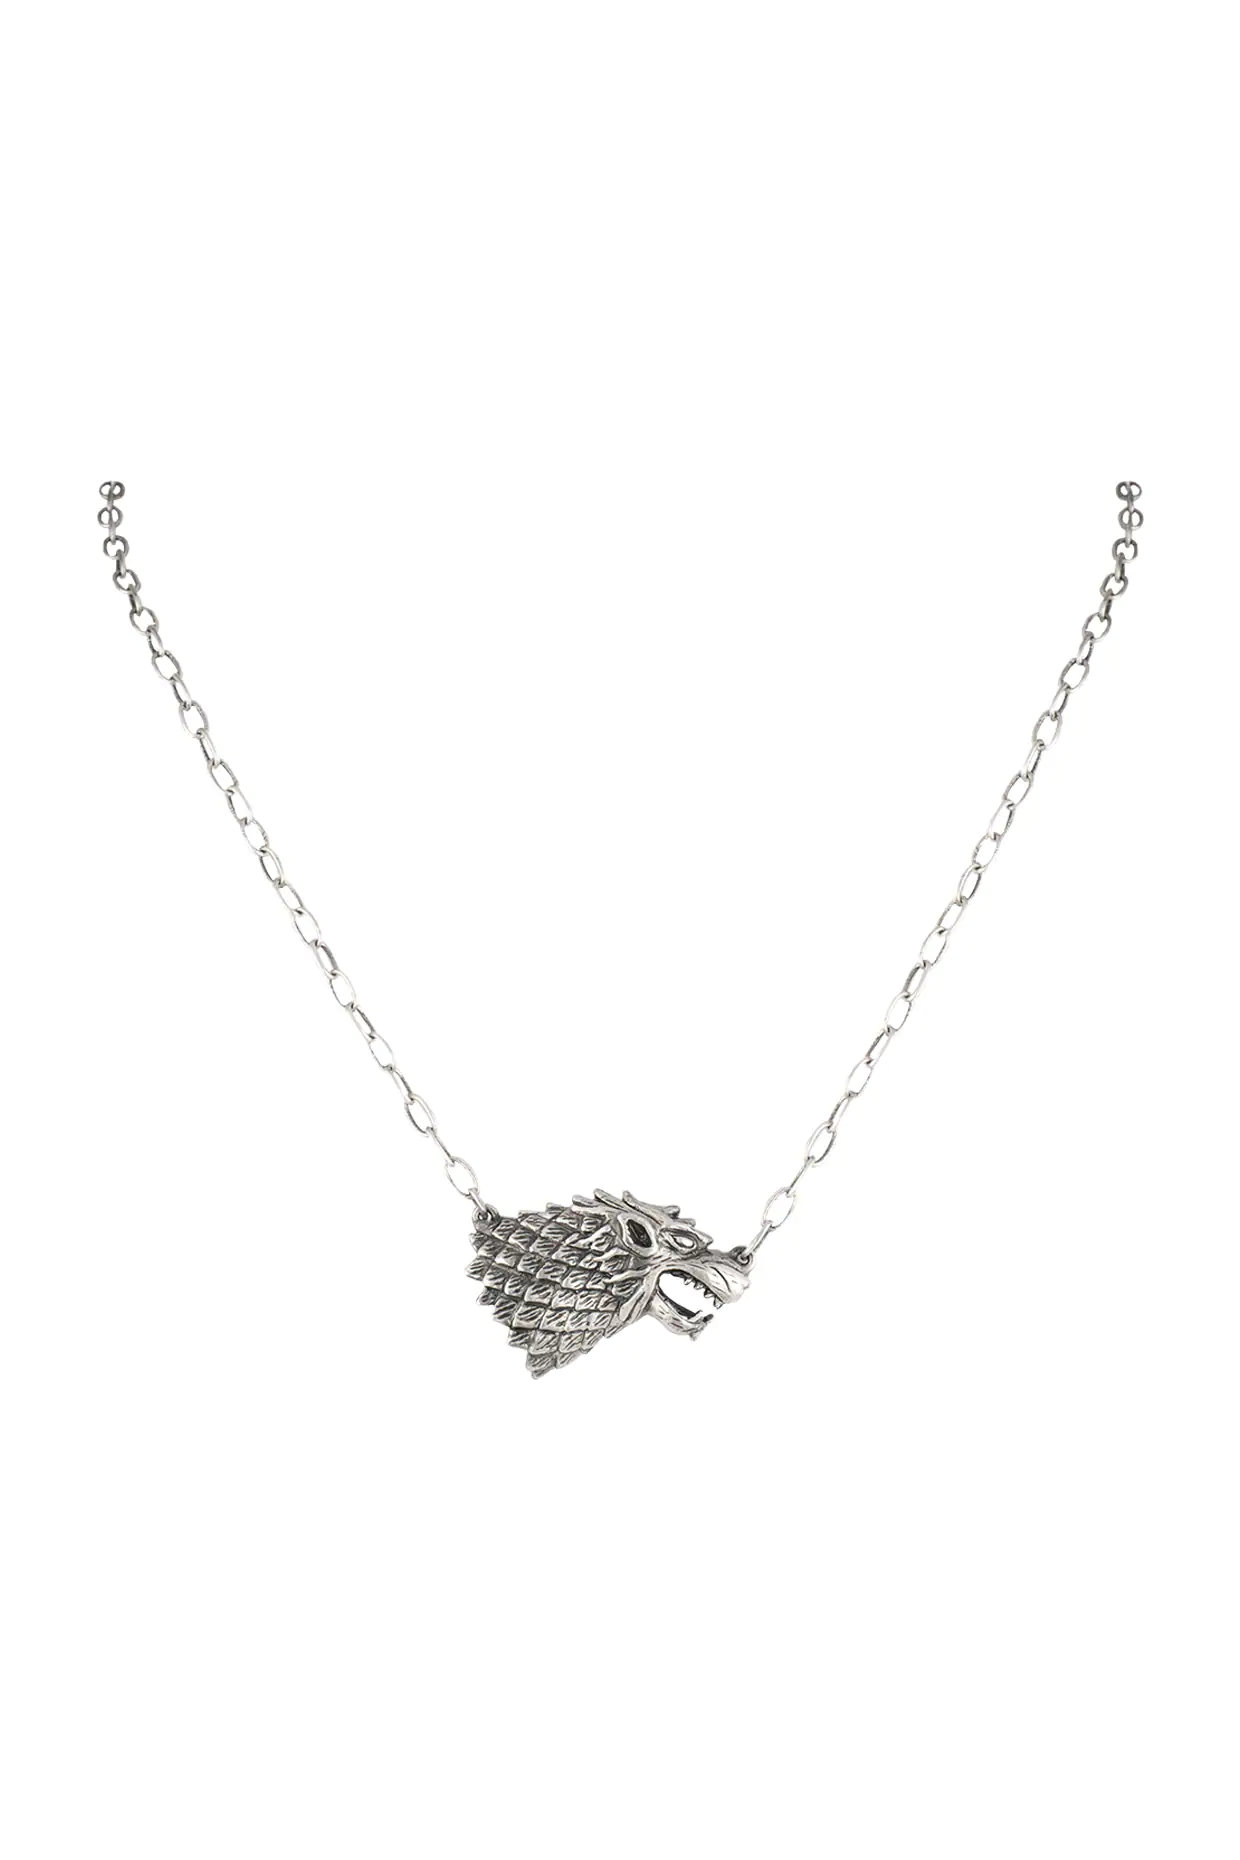 Silver Finish Rise Of The Lone Wolf Chain Necklace